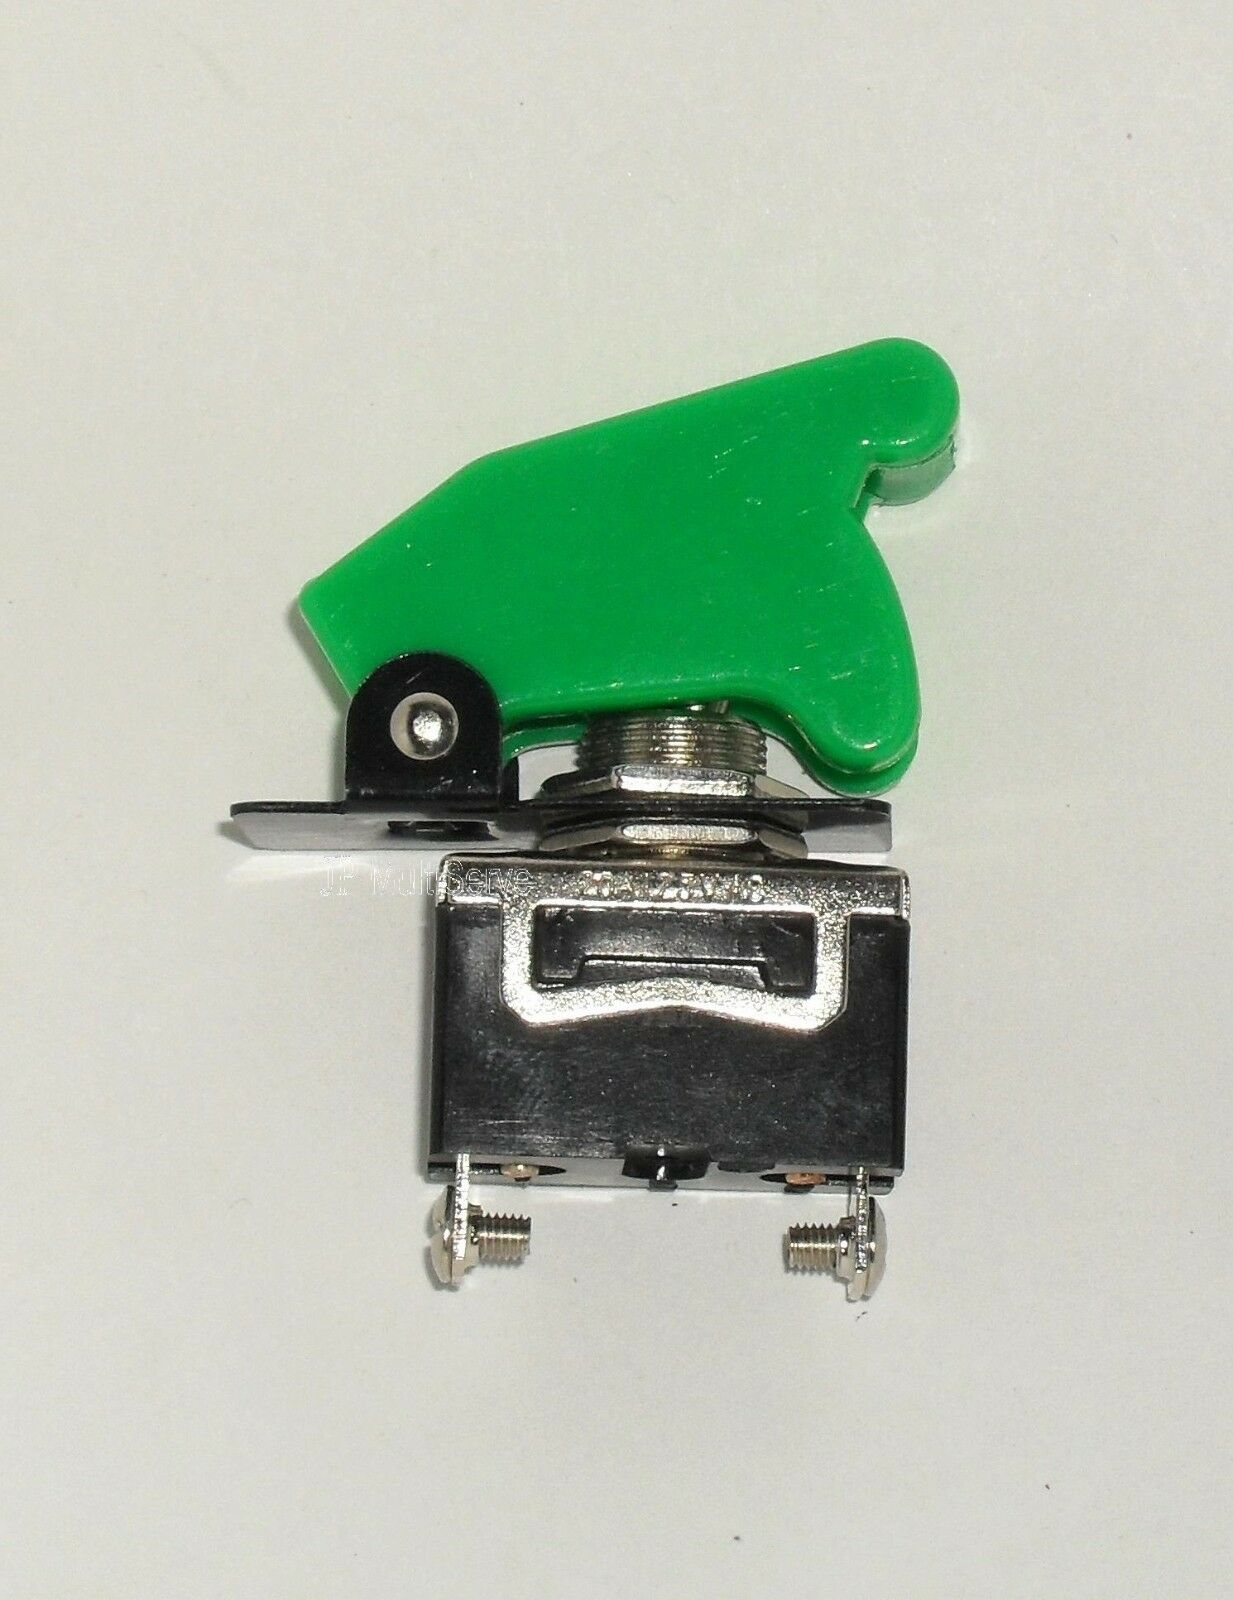 1 SPST On/Off Full Size Toggle Switch with GREEN Safety Cover